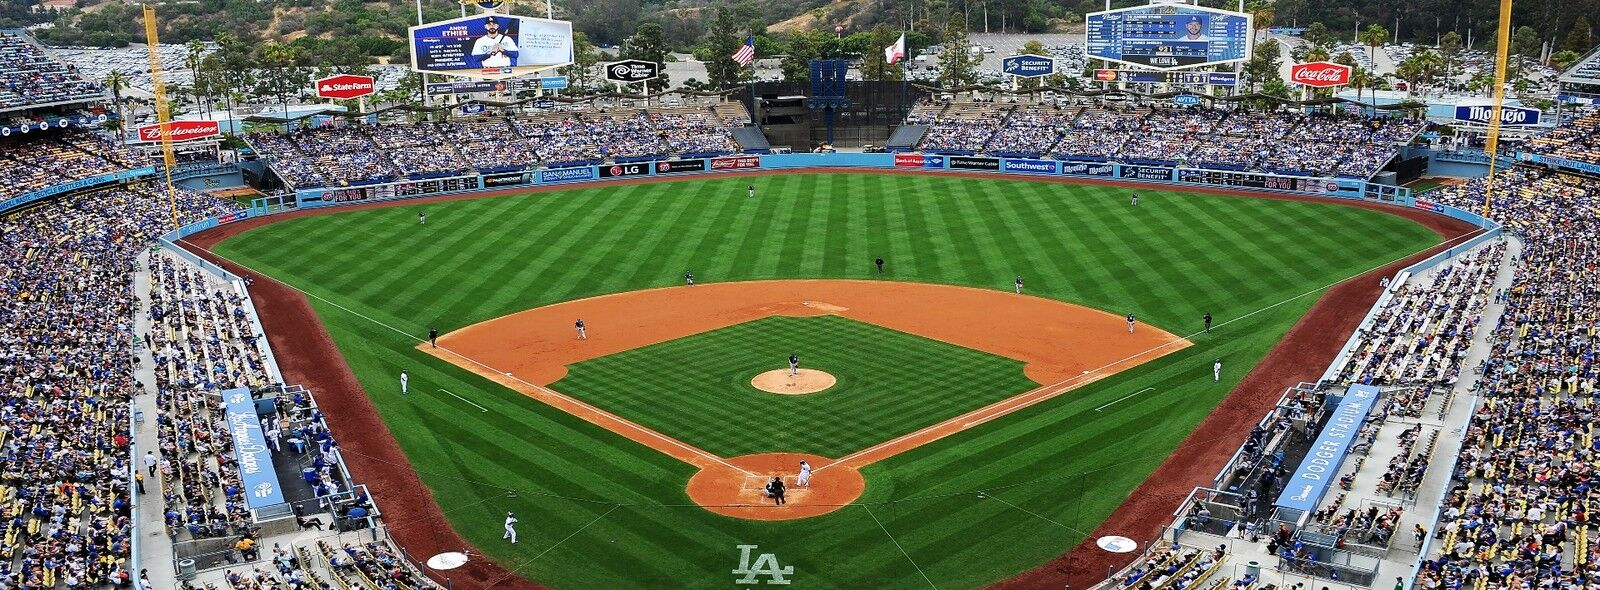 Philadelphia Phillies at Los Angeles Dodgers Tickets (Corey Seager Bobblehead)